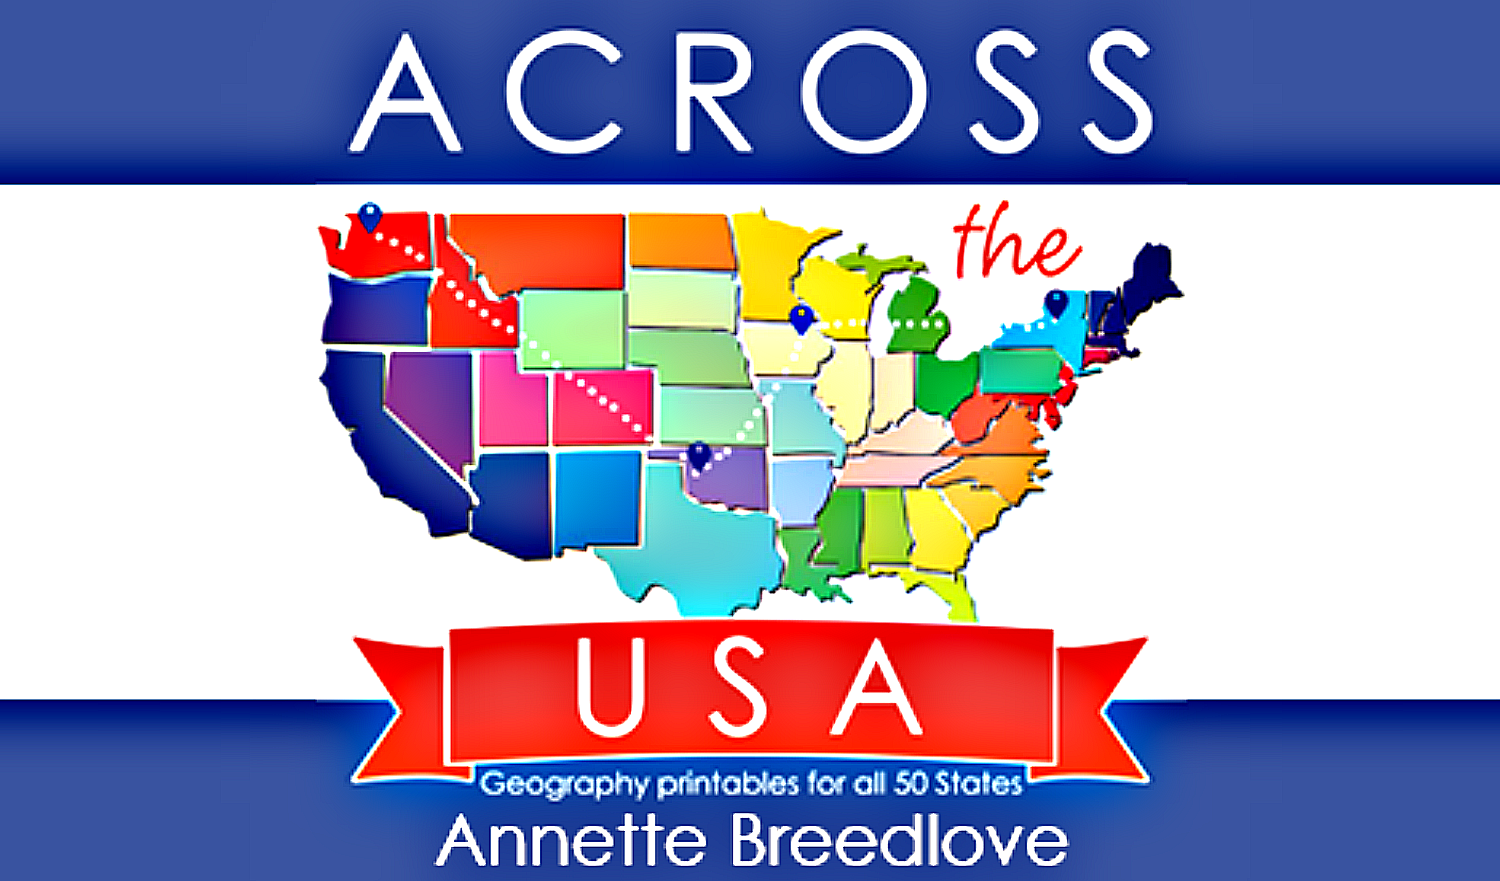 Amazing Geography Curriculum – Across The USA